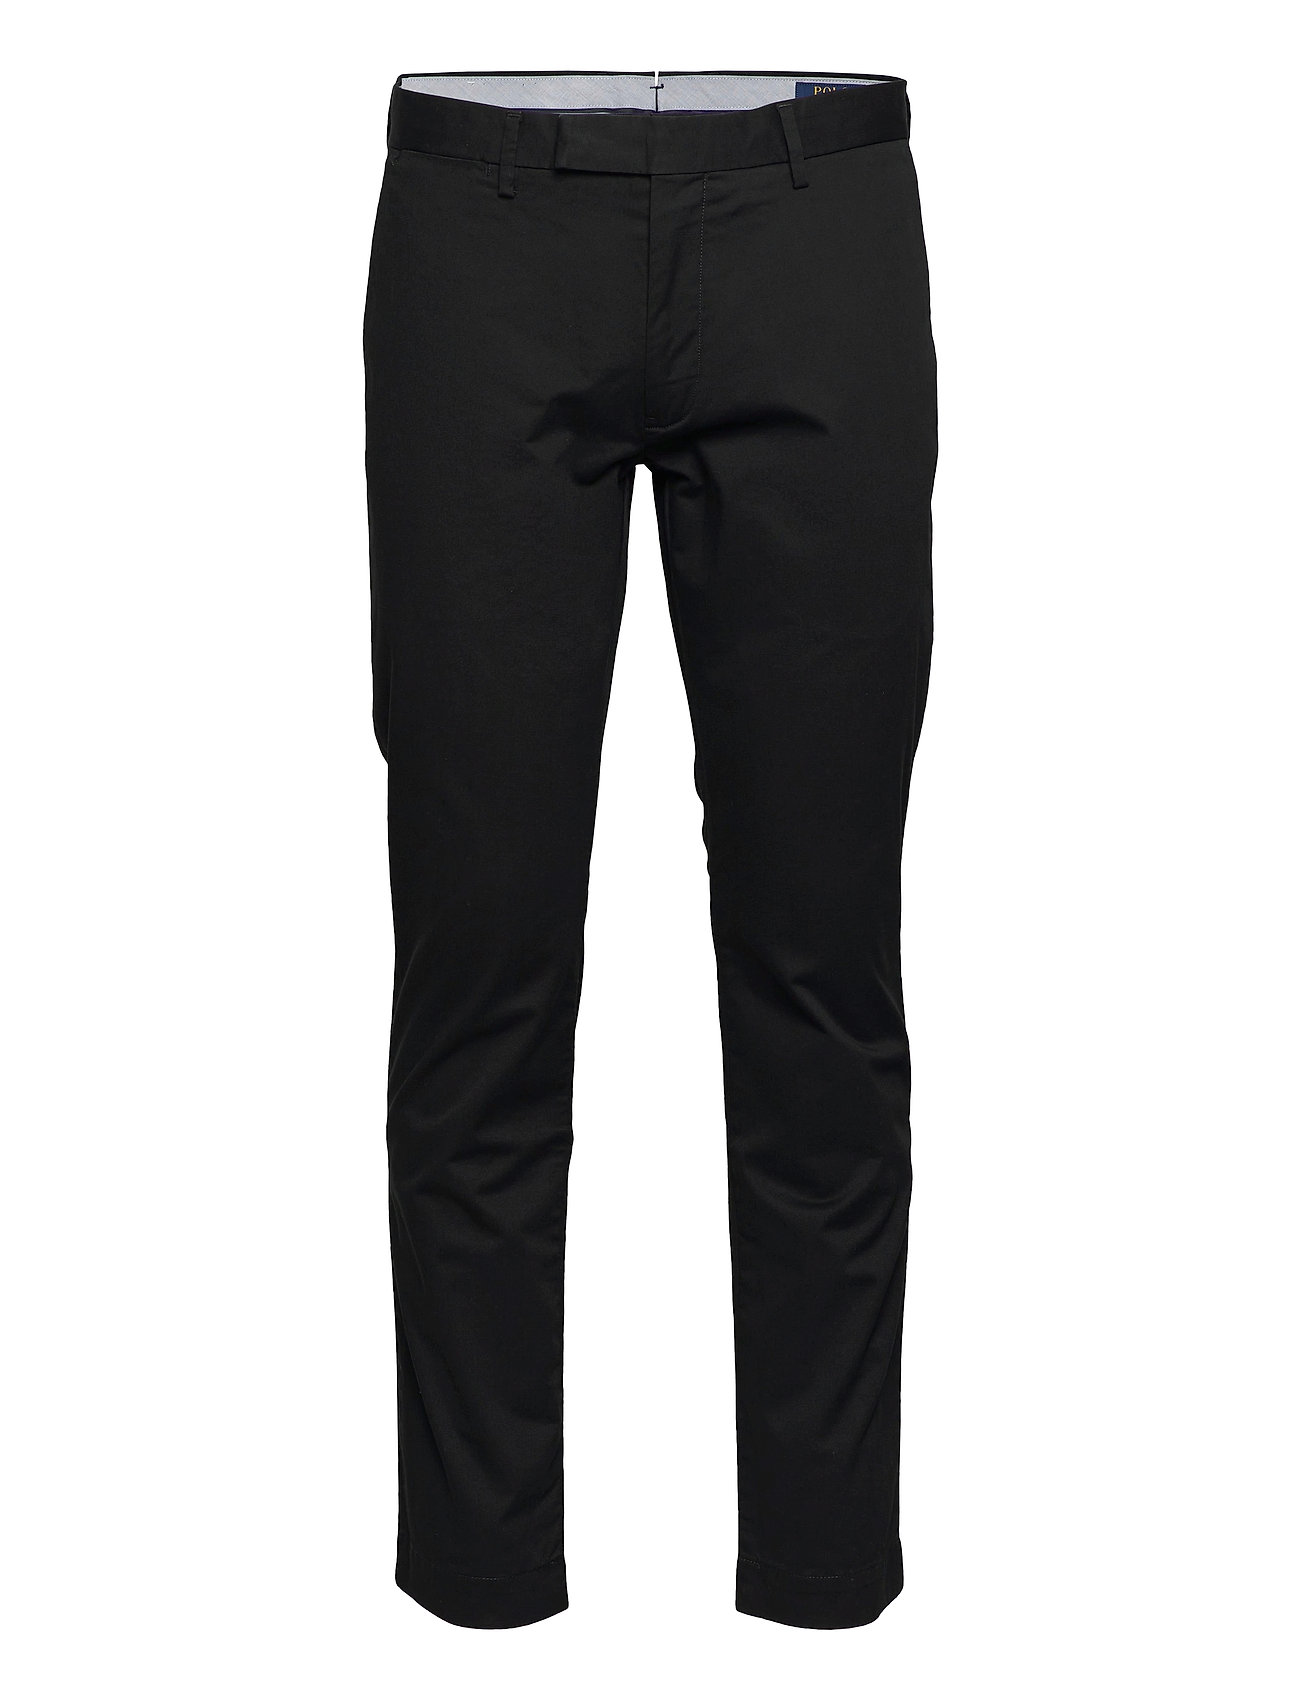 Cotton BlackPolo Fit Ralph Chinopolo Slim Stretch Lauren WIeEDH9Y2